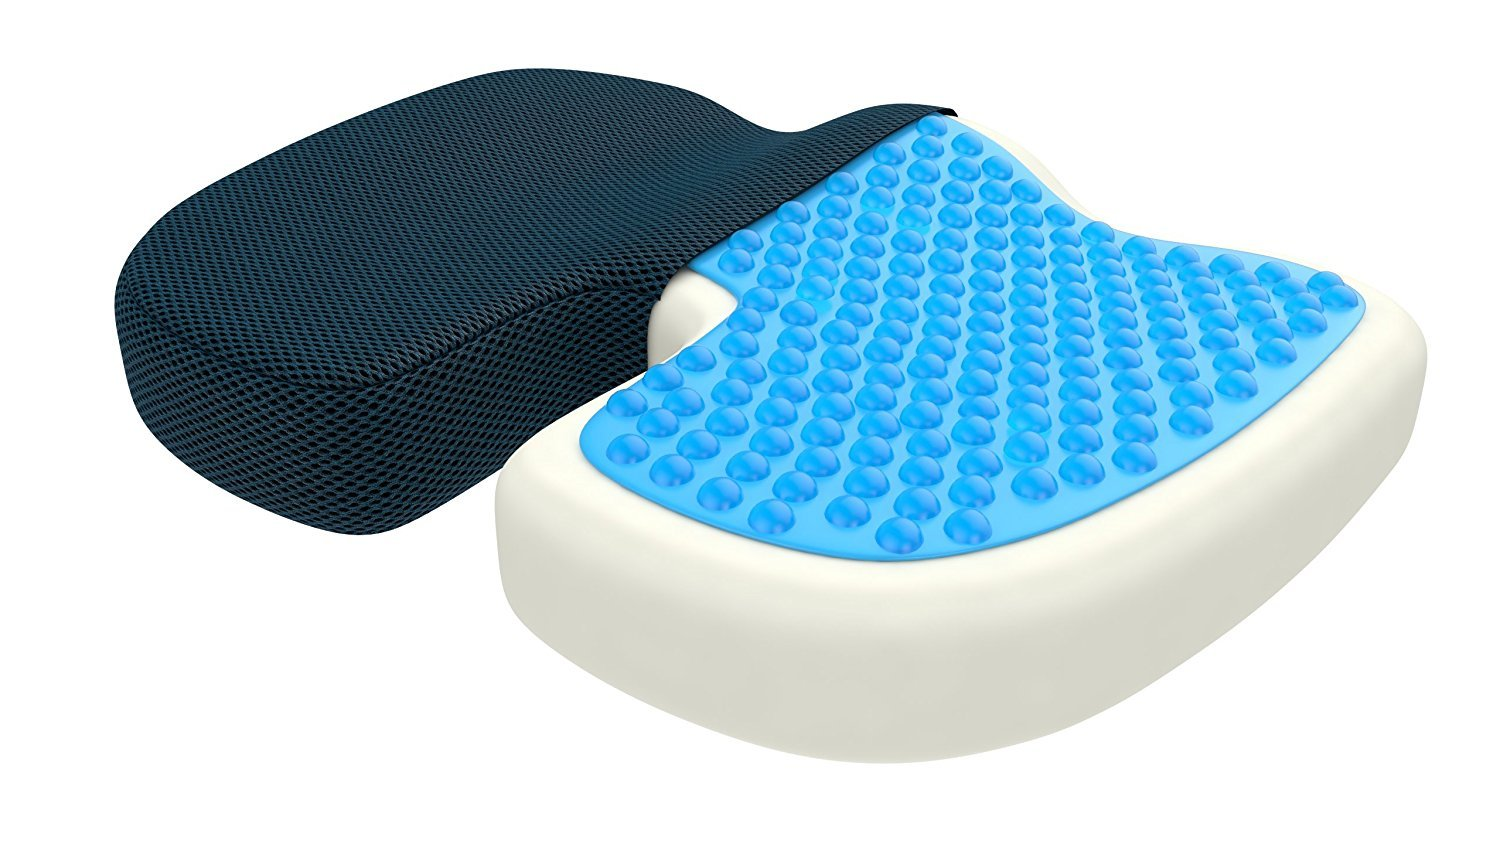 bonmedico Large Orthopedic Seat Cushion, Gel and Memory Foam Seat Pillow to Relieve Back, Sciatica...